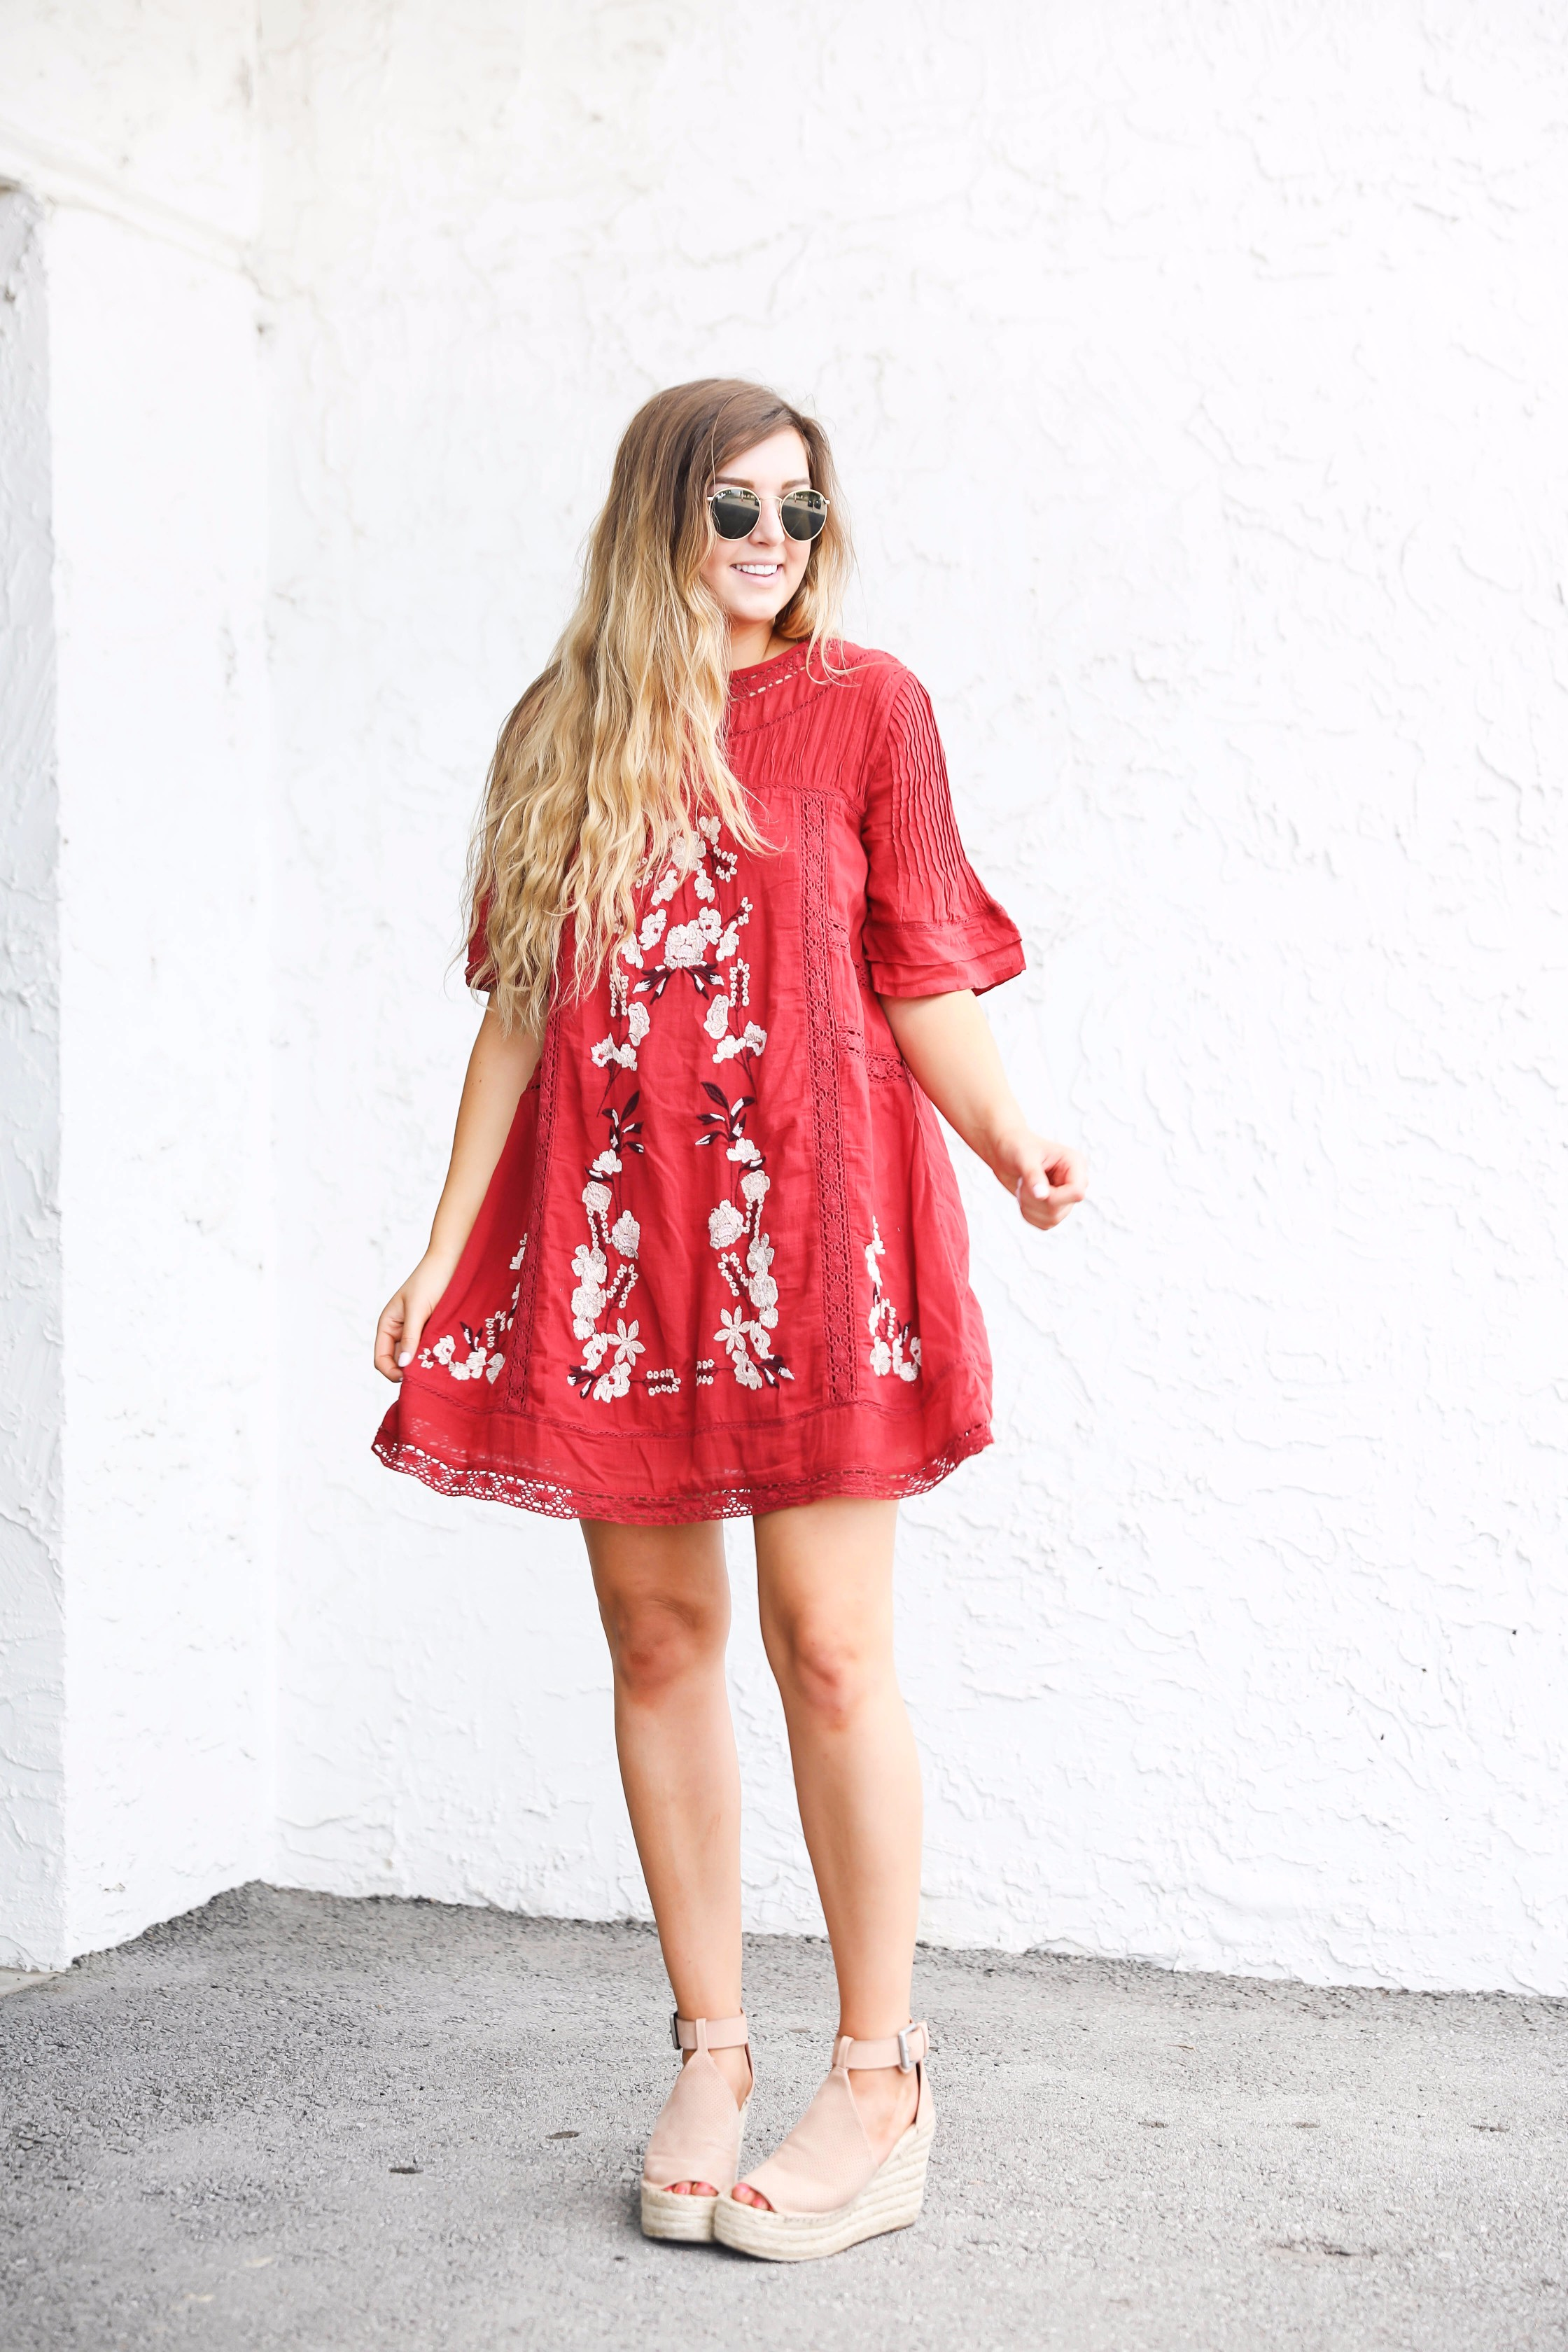 60 Year Anniversary >> Red Dress for Fall | OOTD | Daily Dose of Charm